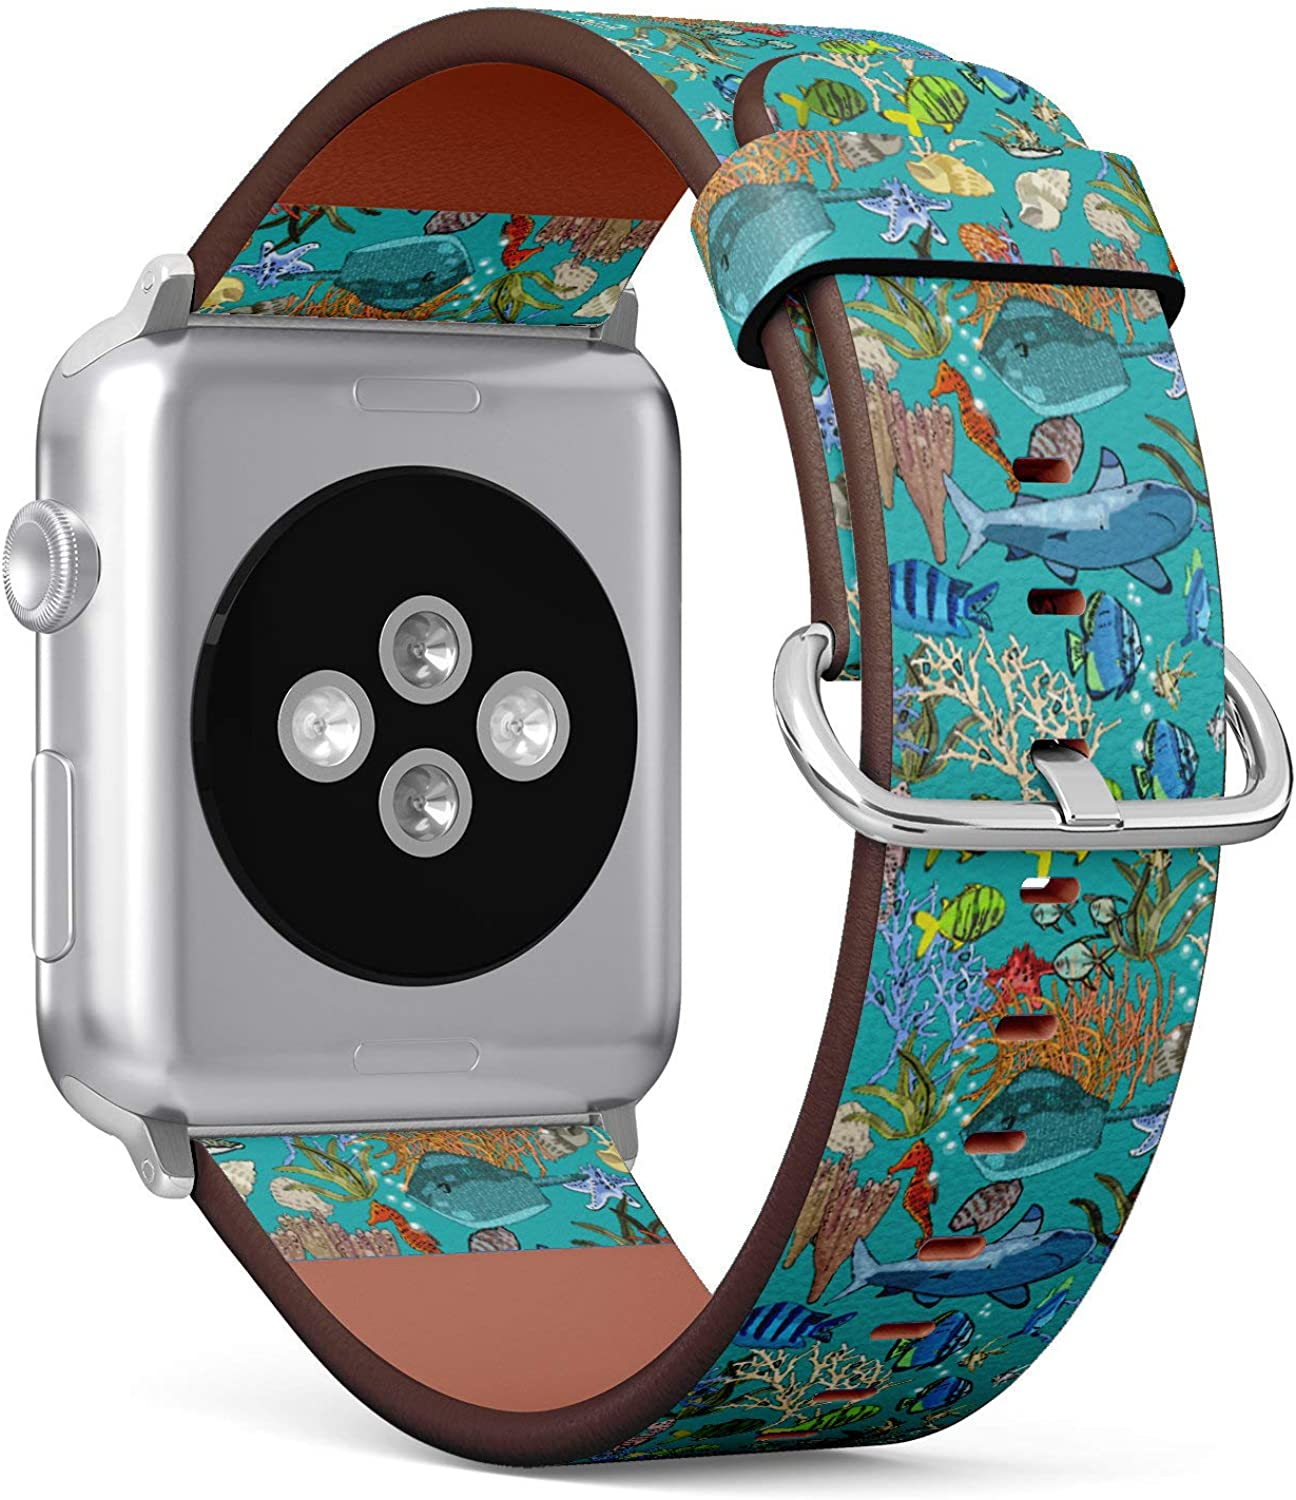 (Exotic Fish, Seahorses, Sharks, Starfish, Coral, Stingray) Patterned Leather Wristband Strap for Apple Watch Series 4/3/2/1 gen,Replacement for iWatch 42mm / 44mm Bands